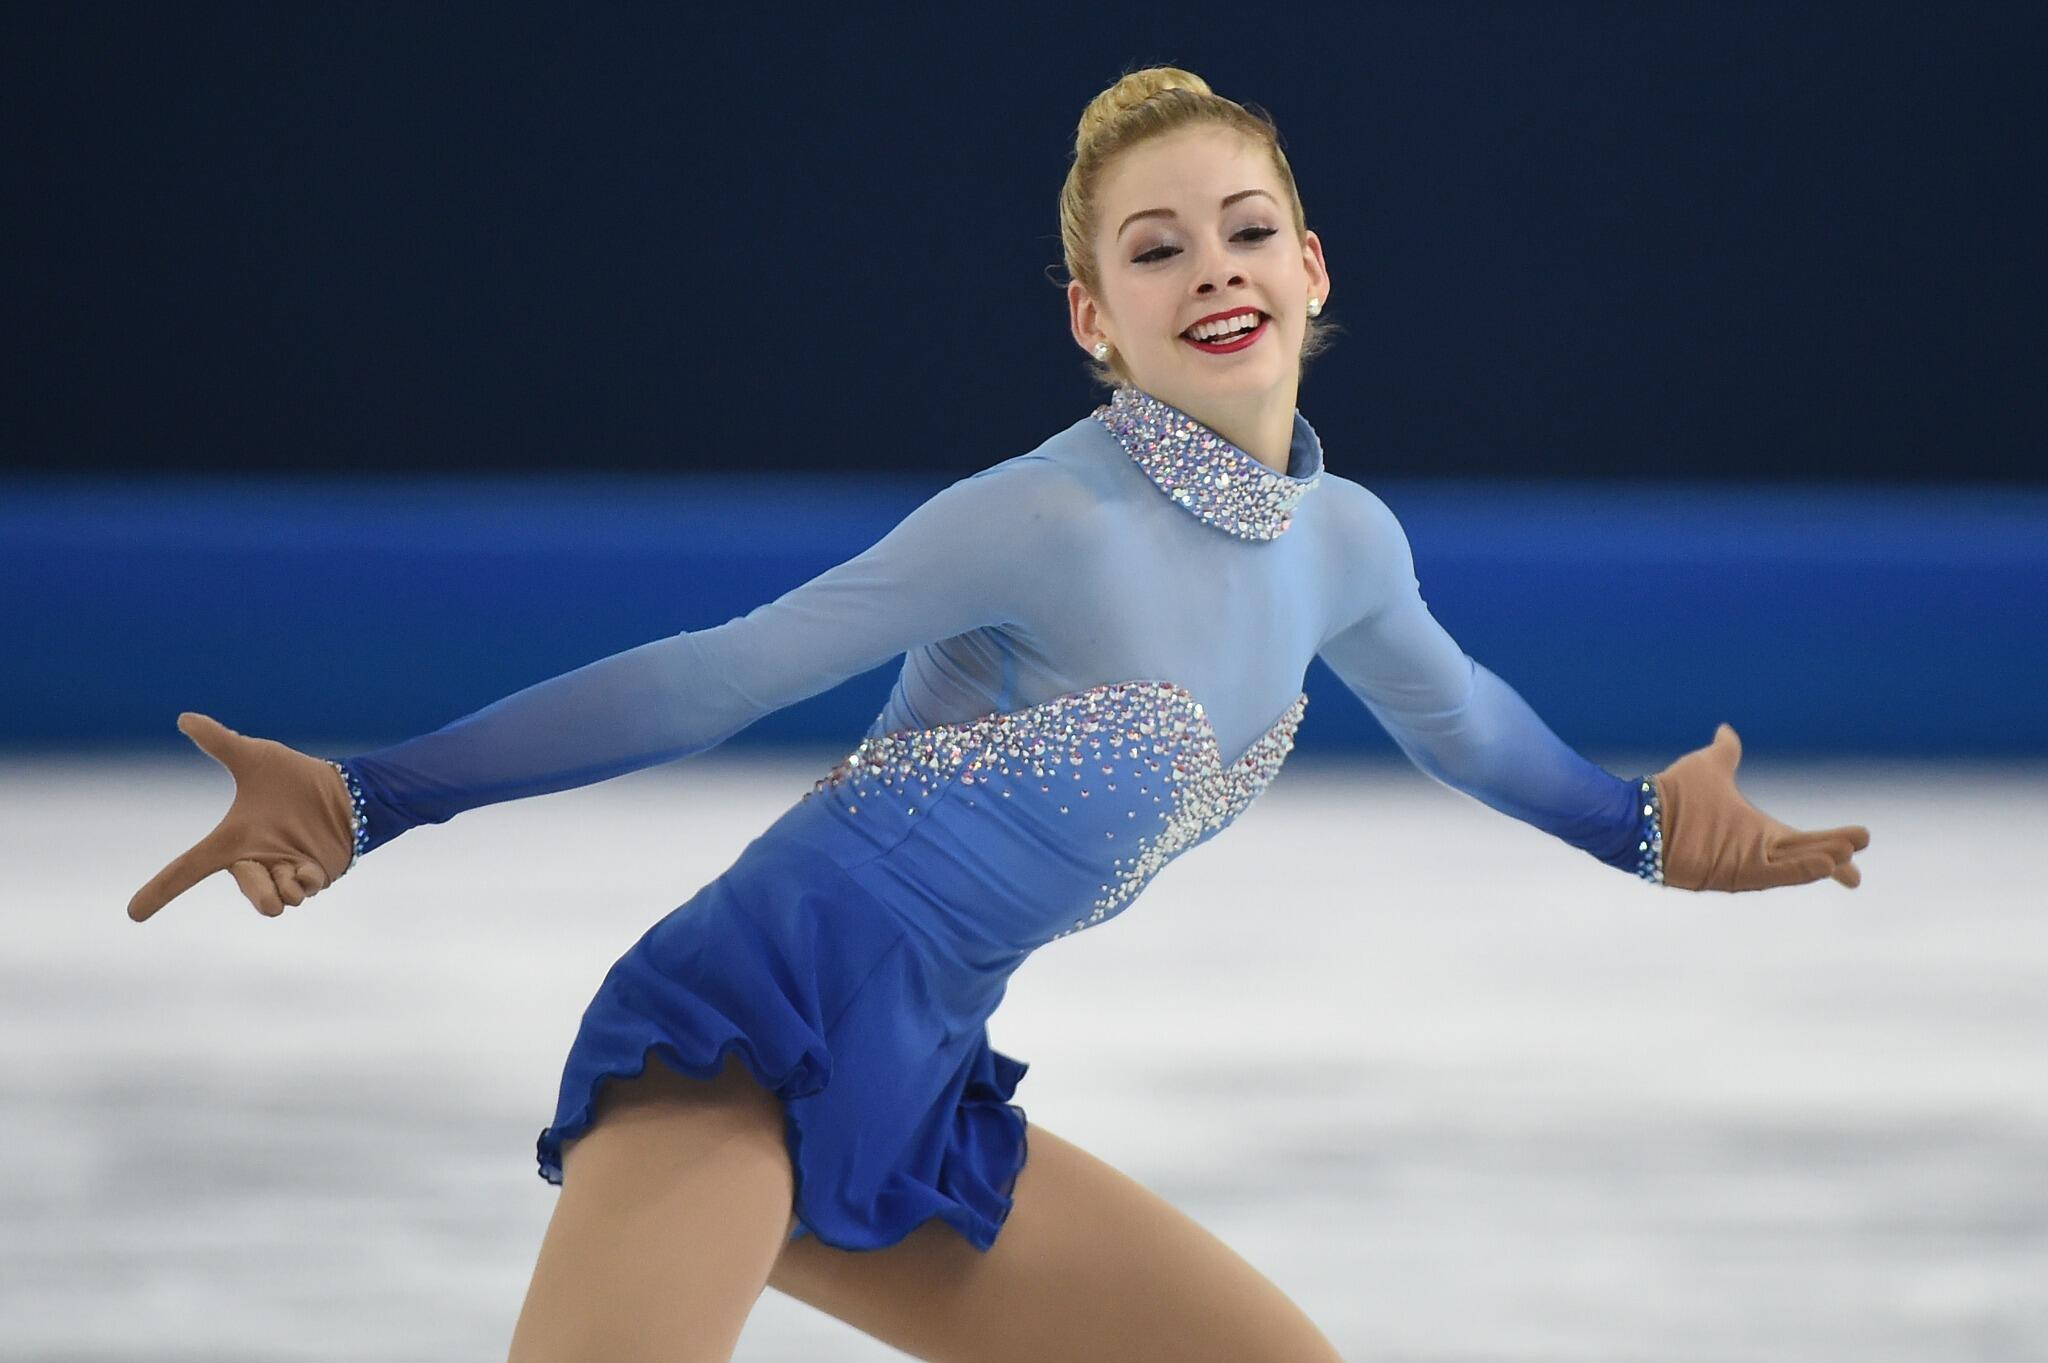 A photo of @GraceEGold from tonight! (Credit @GettyImages) http://t.co/C33hoWzkMM